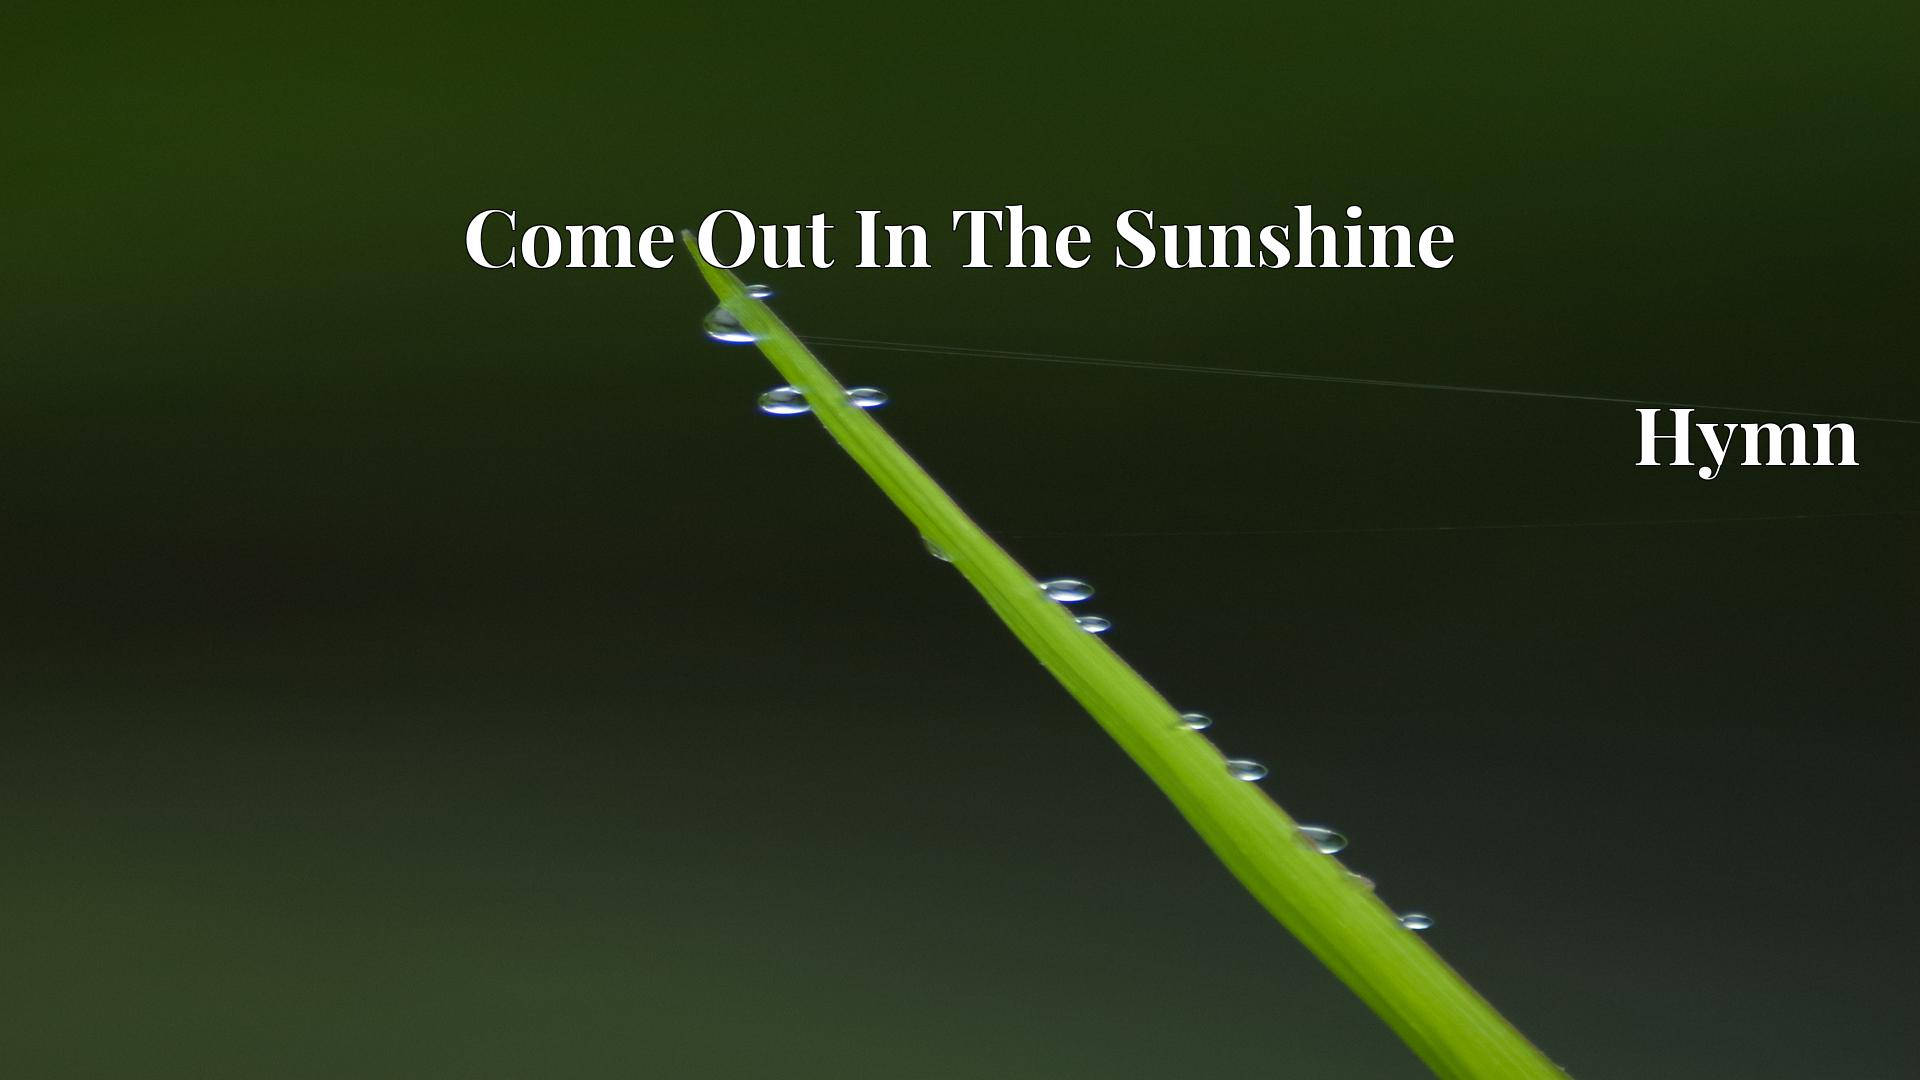 Come Out In The Sunshine Hymn Lyric